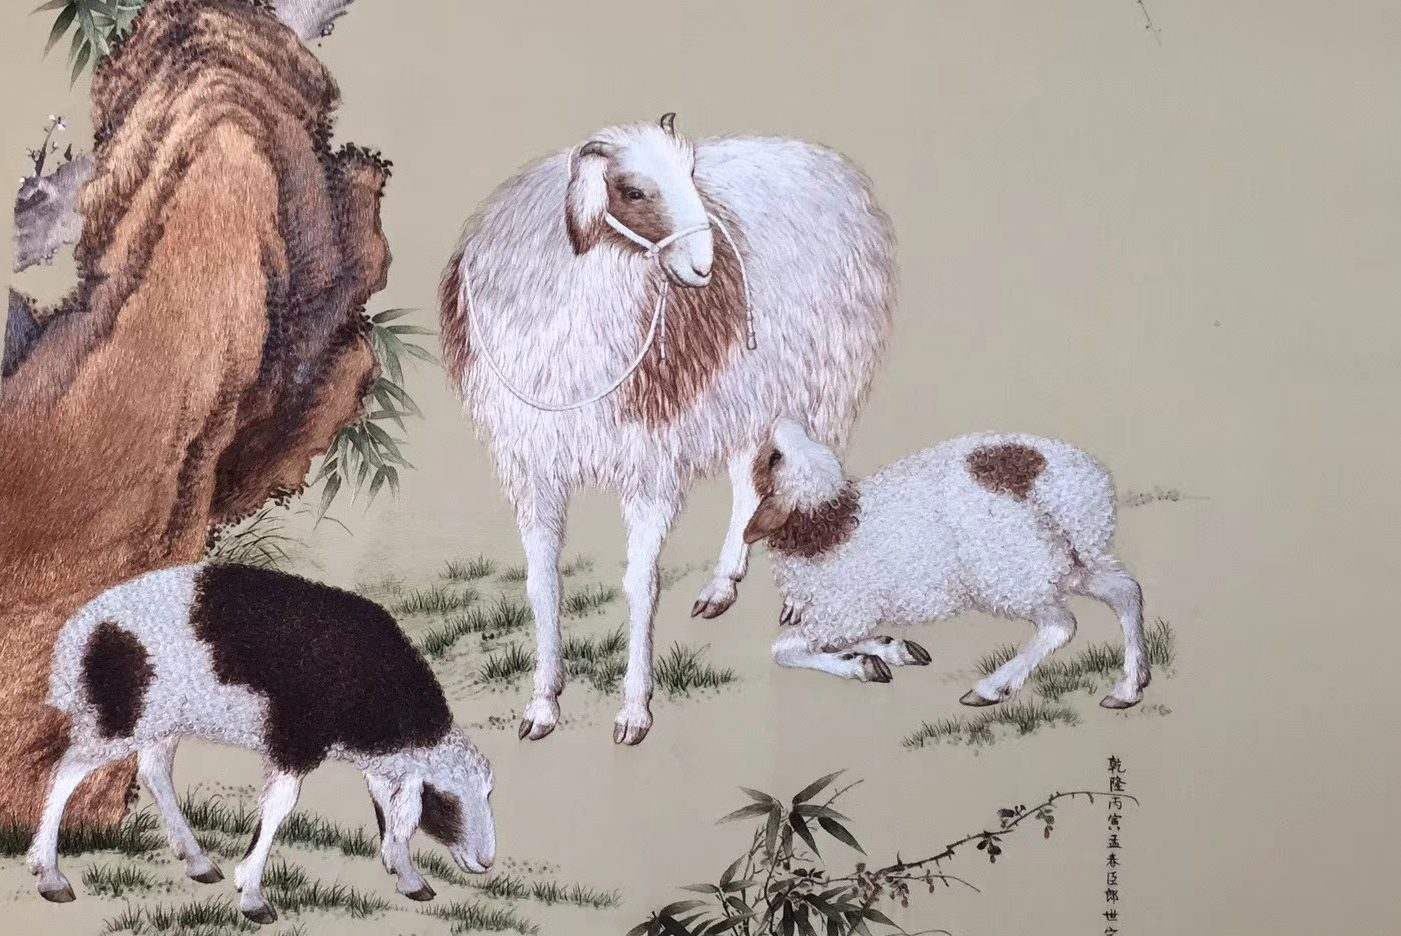 Chinese Handicraft Embroidery Artworks Zeearts Online Gallery